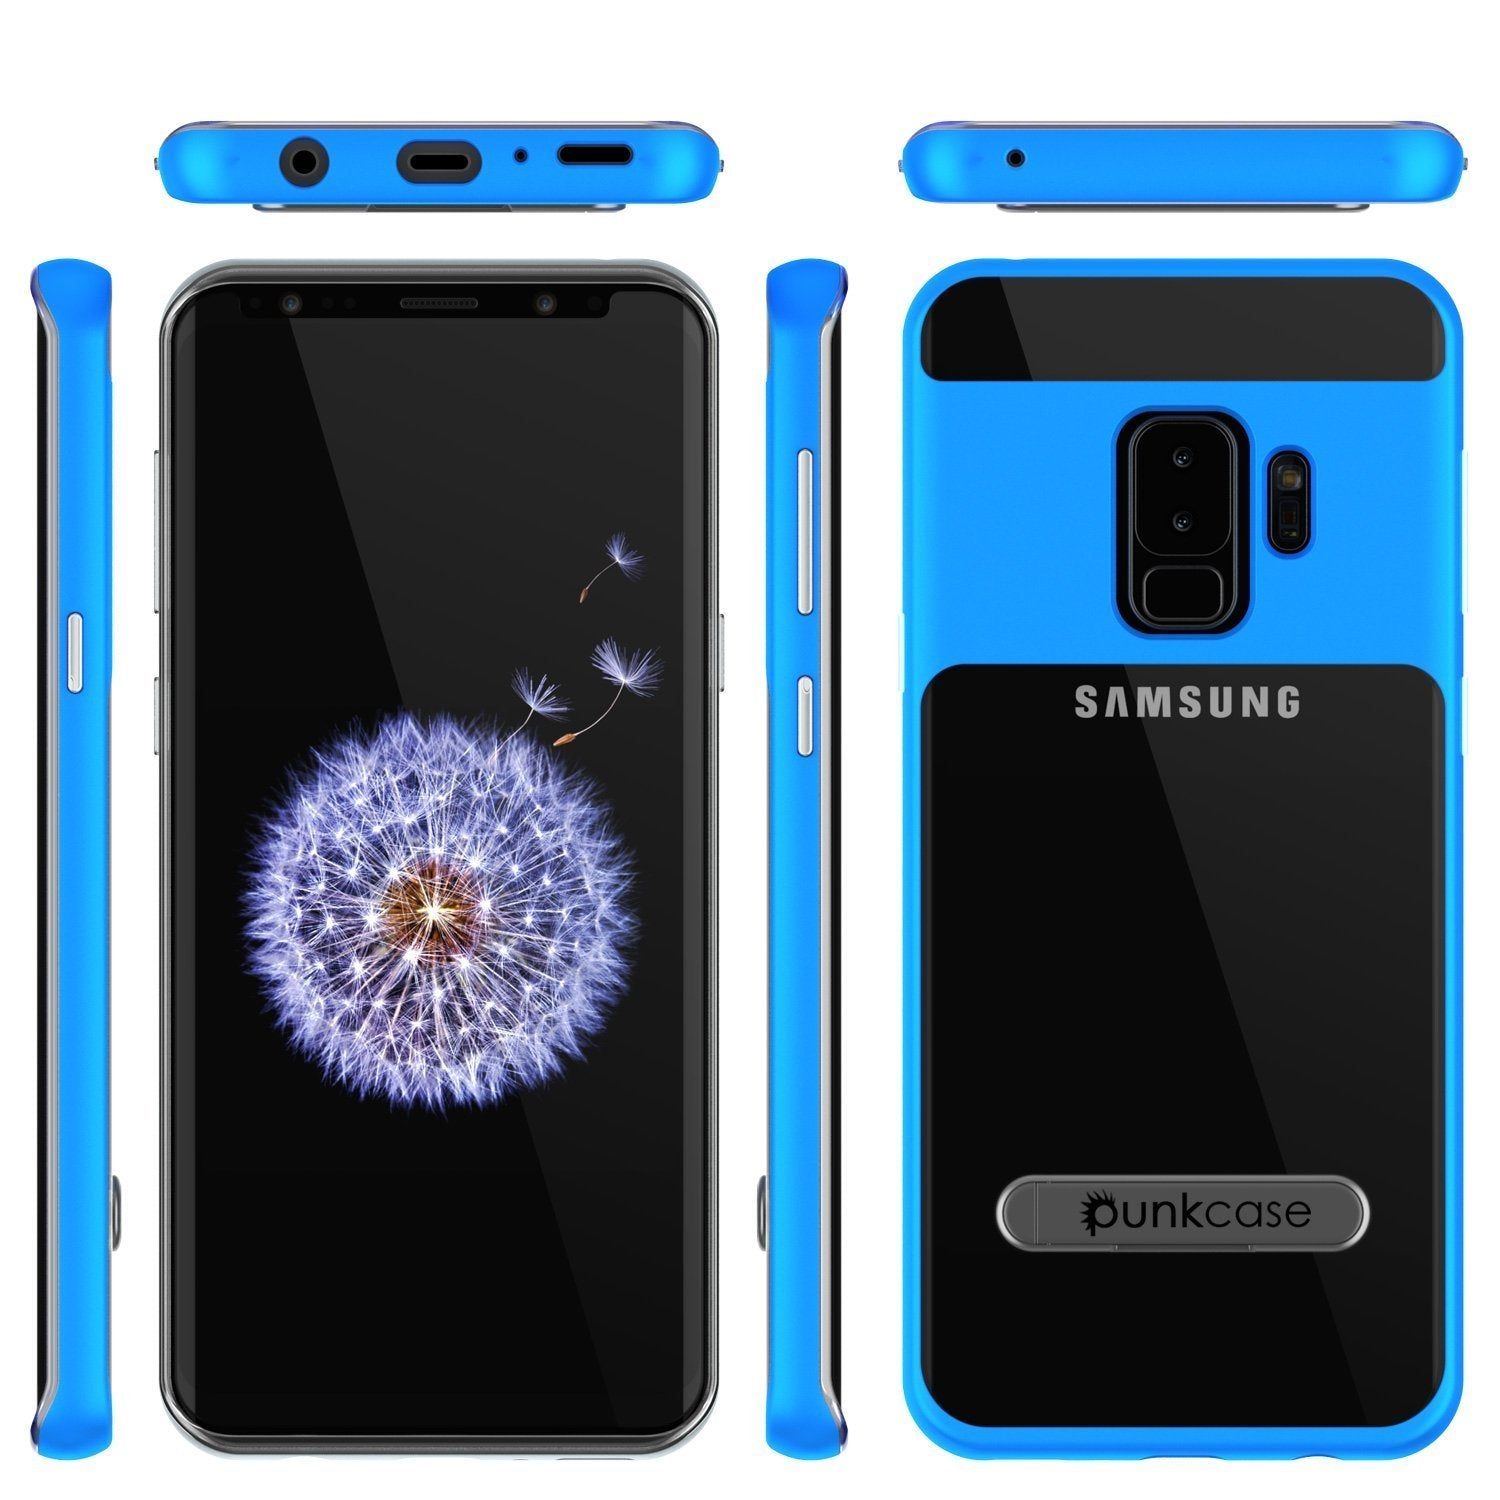 Galaxy S9+ Plus Case, PUNKcase [LUCID 3.0 Series] [Slim Fit] [Clear Back] Armor Cover w/ Integrated Kickstand, Anti-Shock System & PUNKSHIELD Screen Protector for Samsung Galaxy S9+ Plus [Blue]